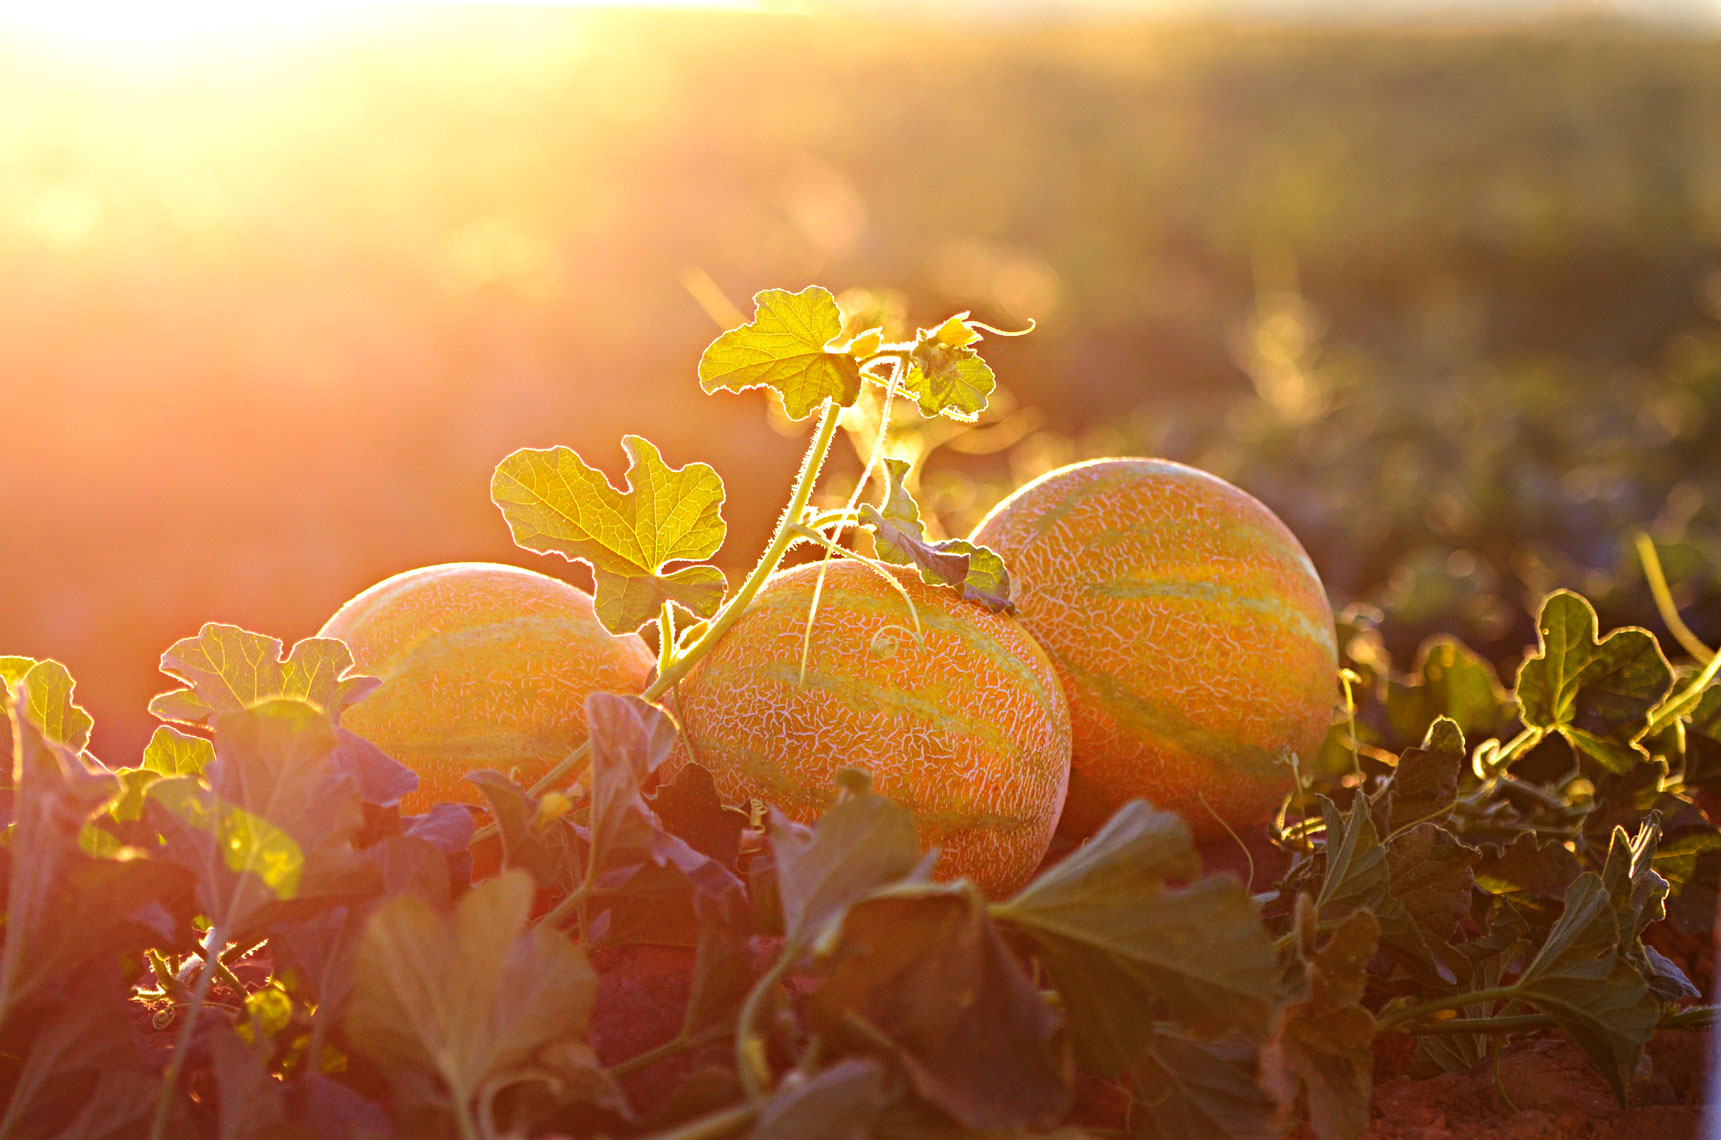 Agriculture-photography-of-yellow-European-Melons-in-the-farm-field-at-sunset.